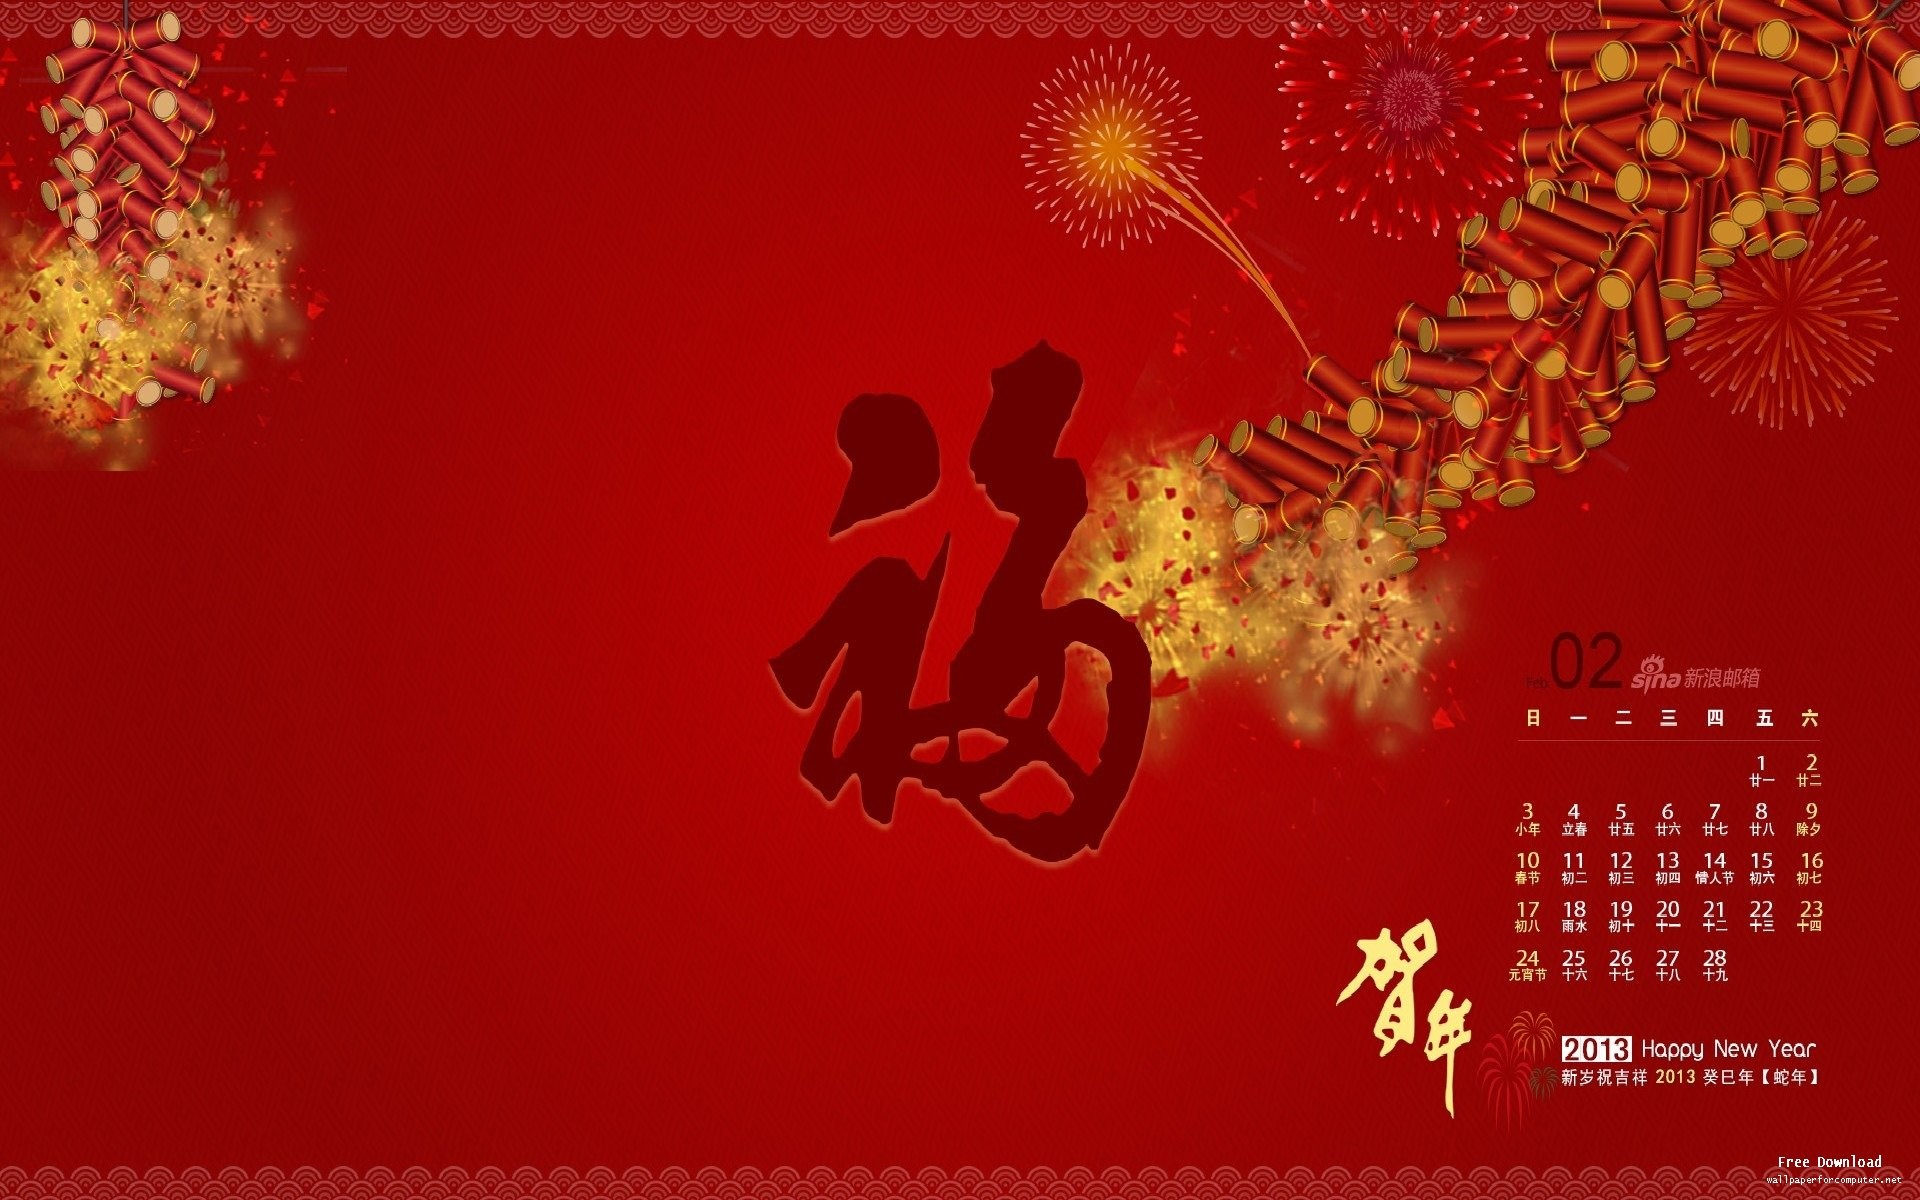 chinese new year wallpaper gong xi fa cai free download | Event | Pinterest